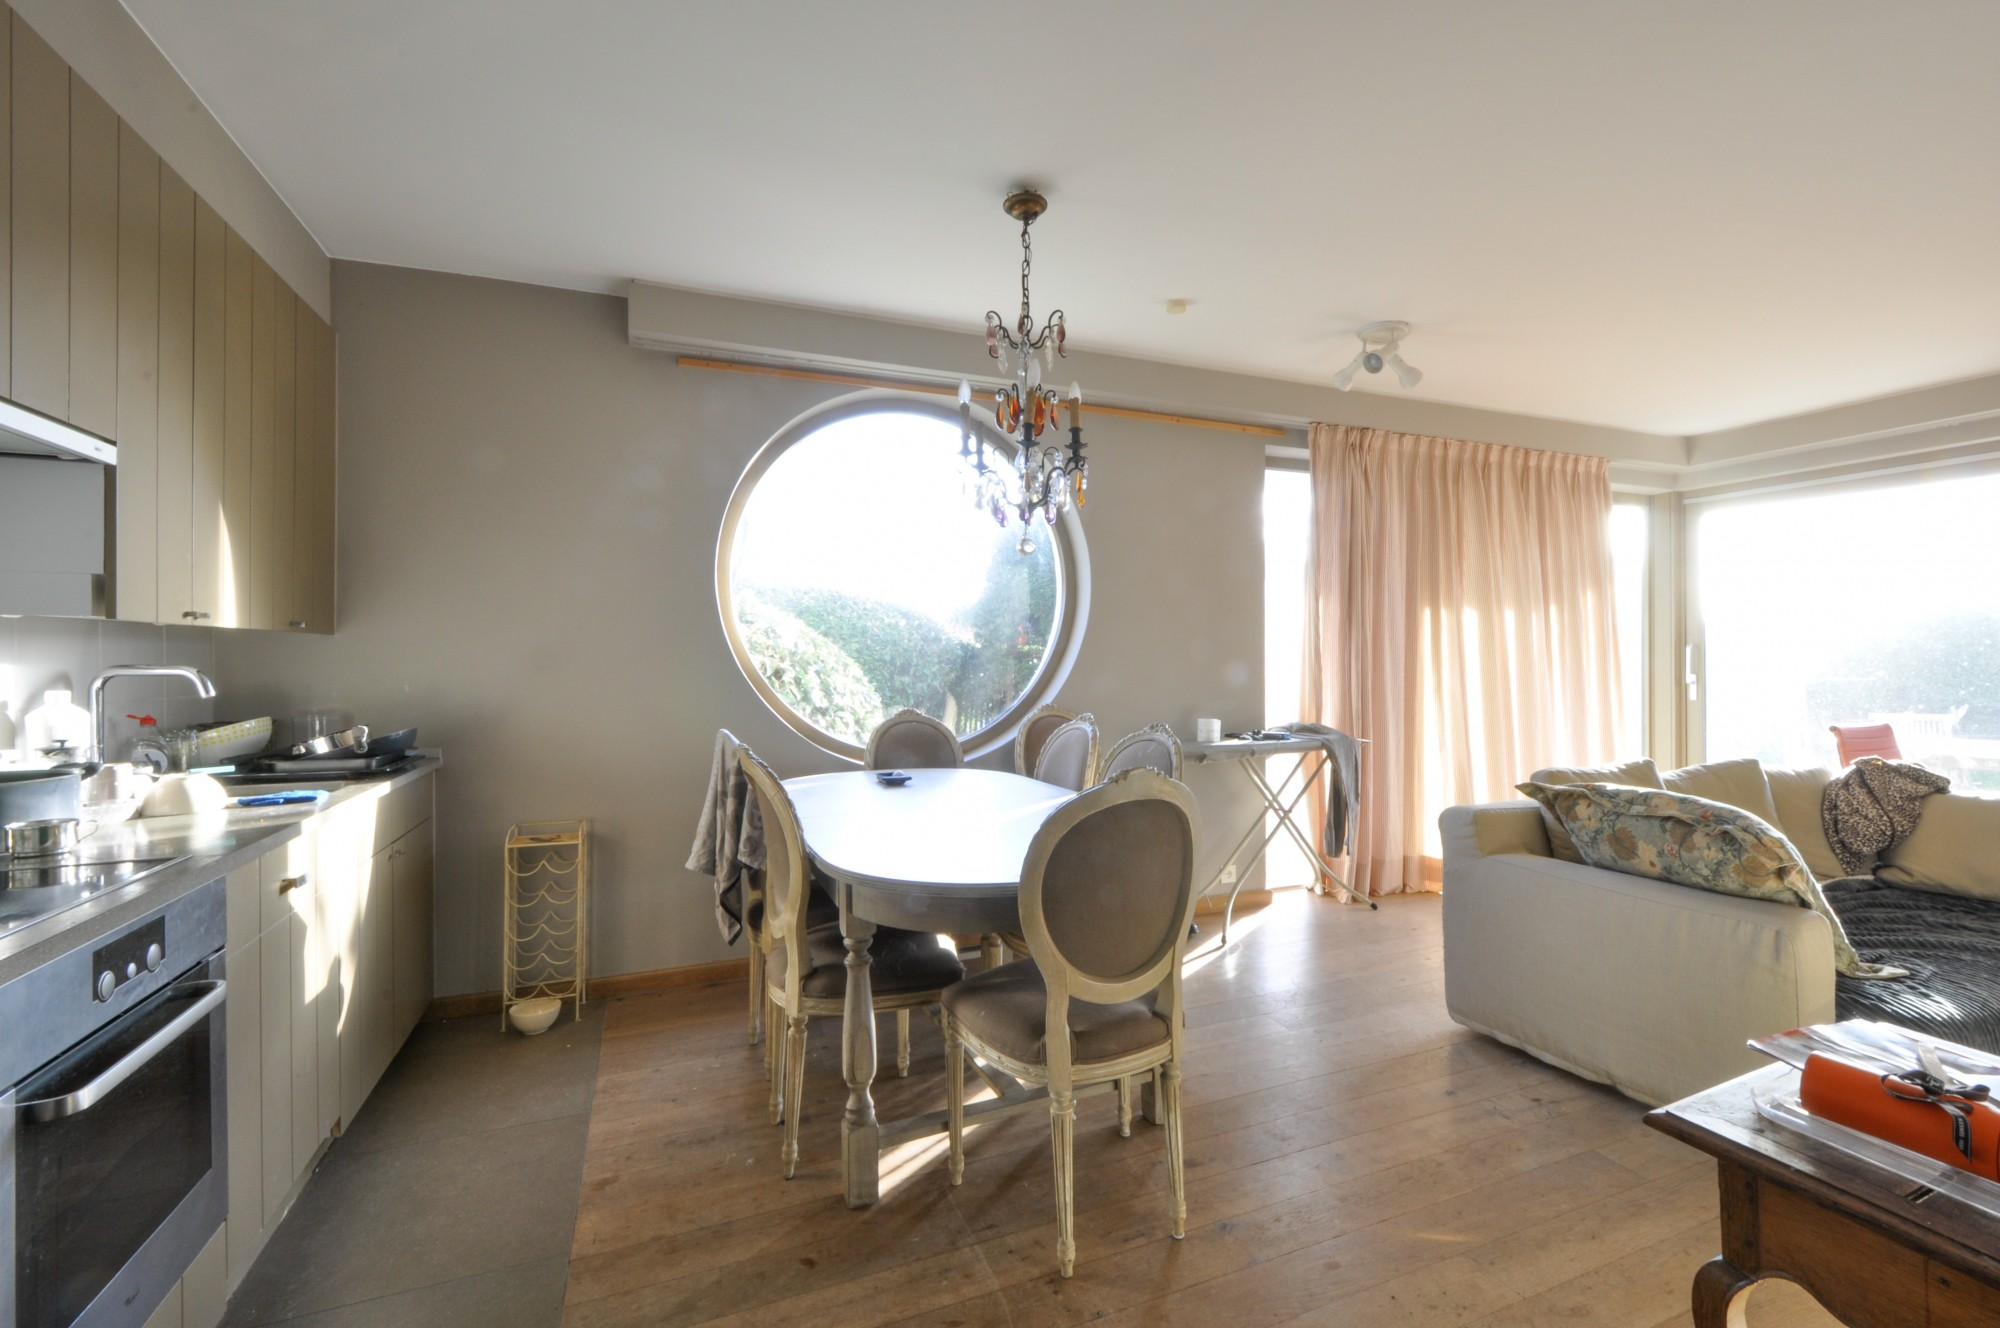 Ventes appartement t1 f1 knokke zoute tuinappartement for Agence immobiliere knokke